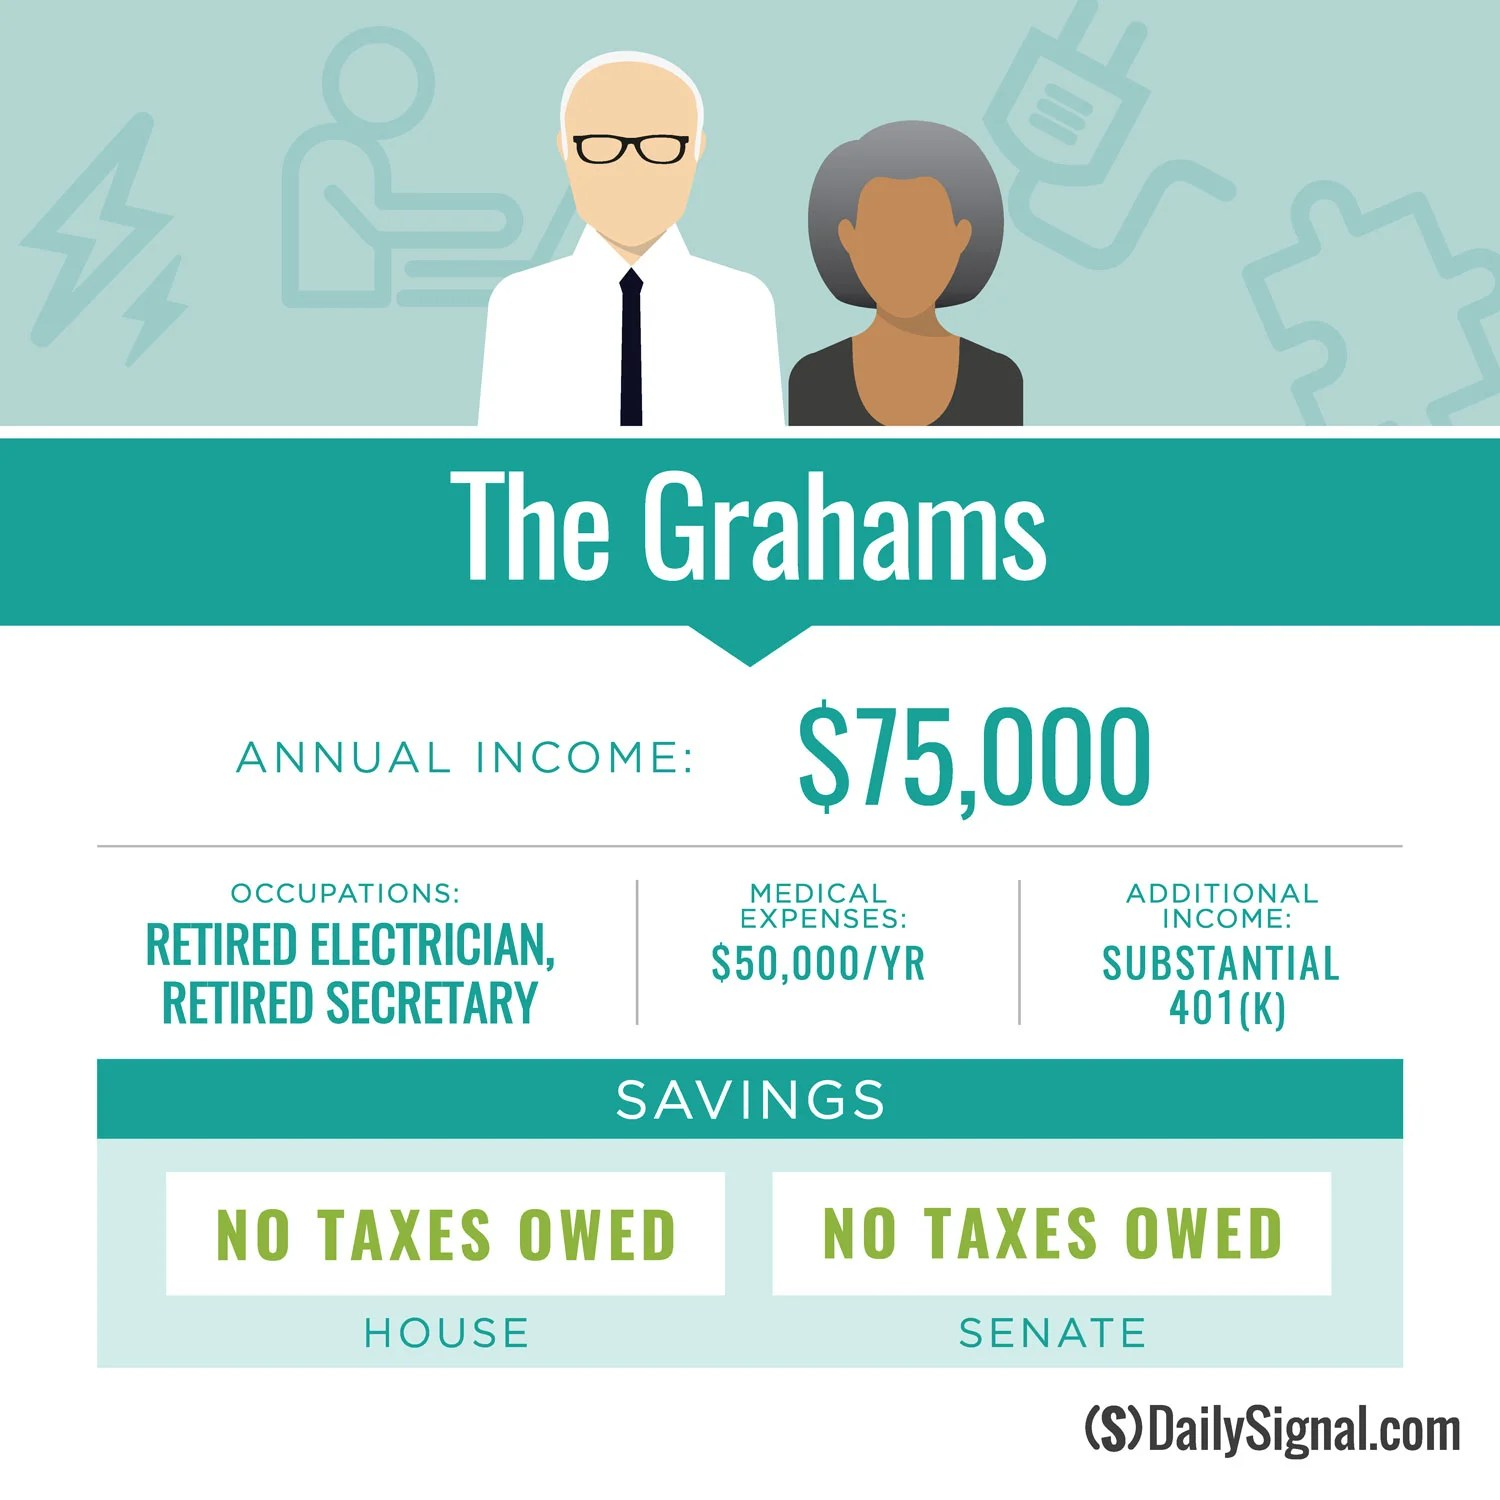 Most Retirees Would Save Money Because Of Tax Reform Here Are Some Key Examples